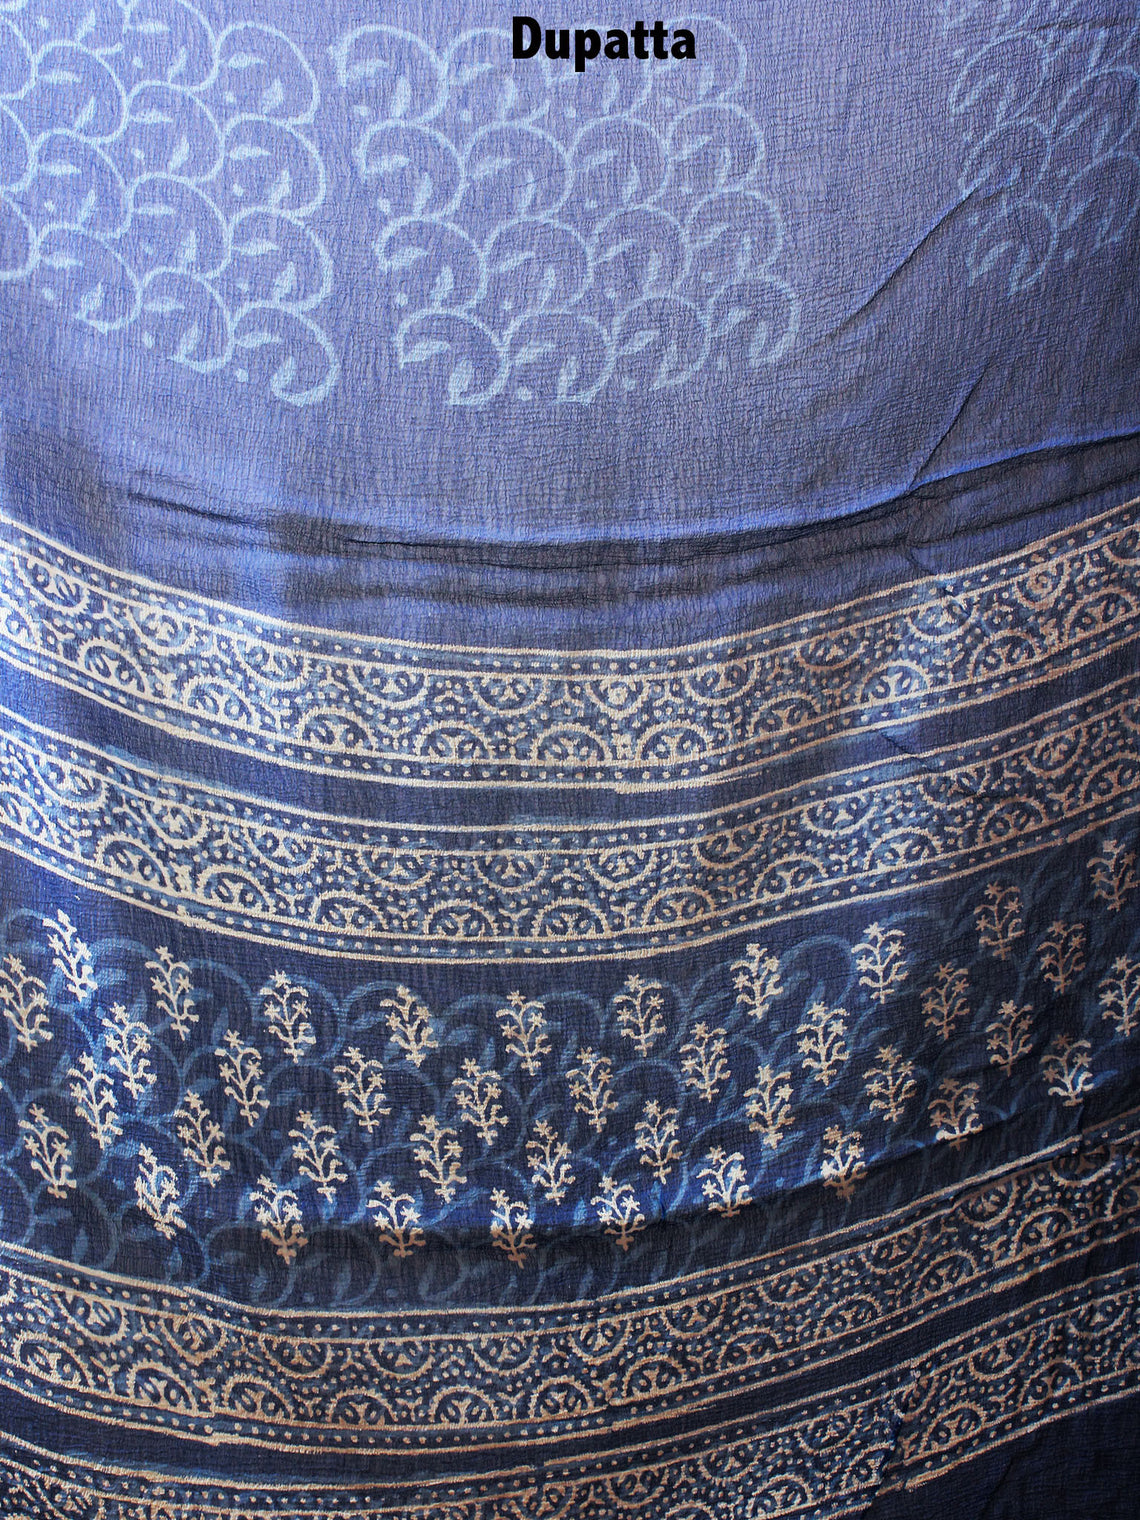 Indigo Beige Hand Block Printed Cotton Suit-Salwar Fabric With Chiffon Dupatta - S1628074